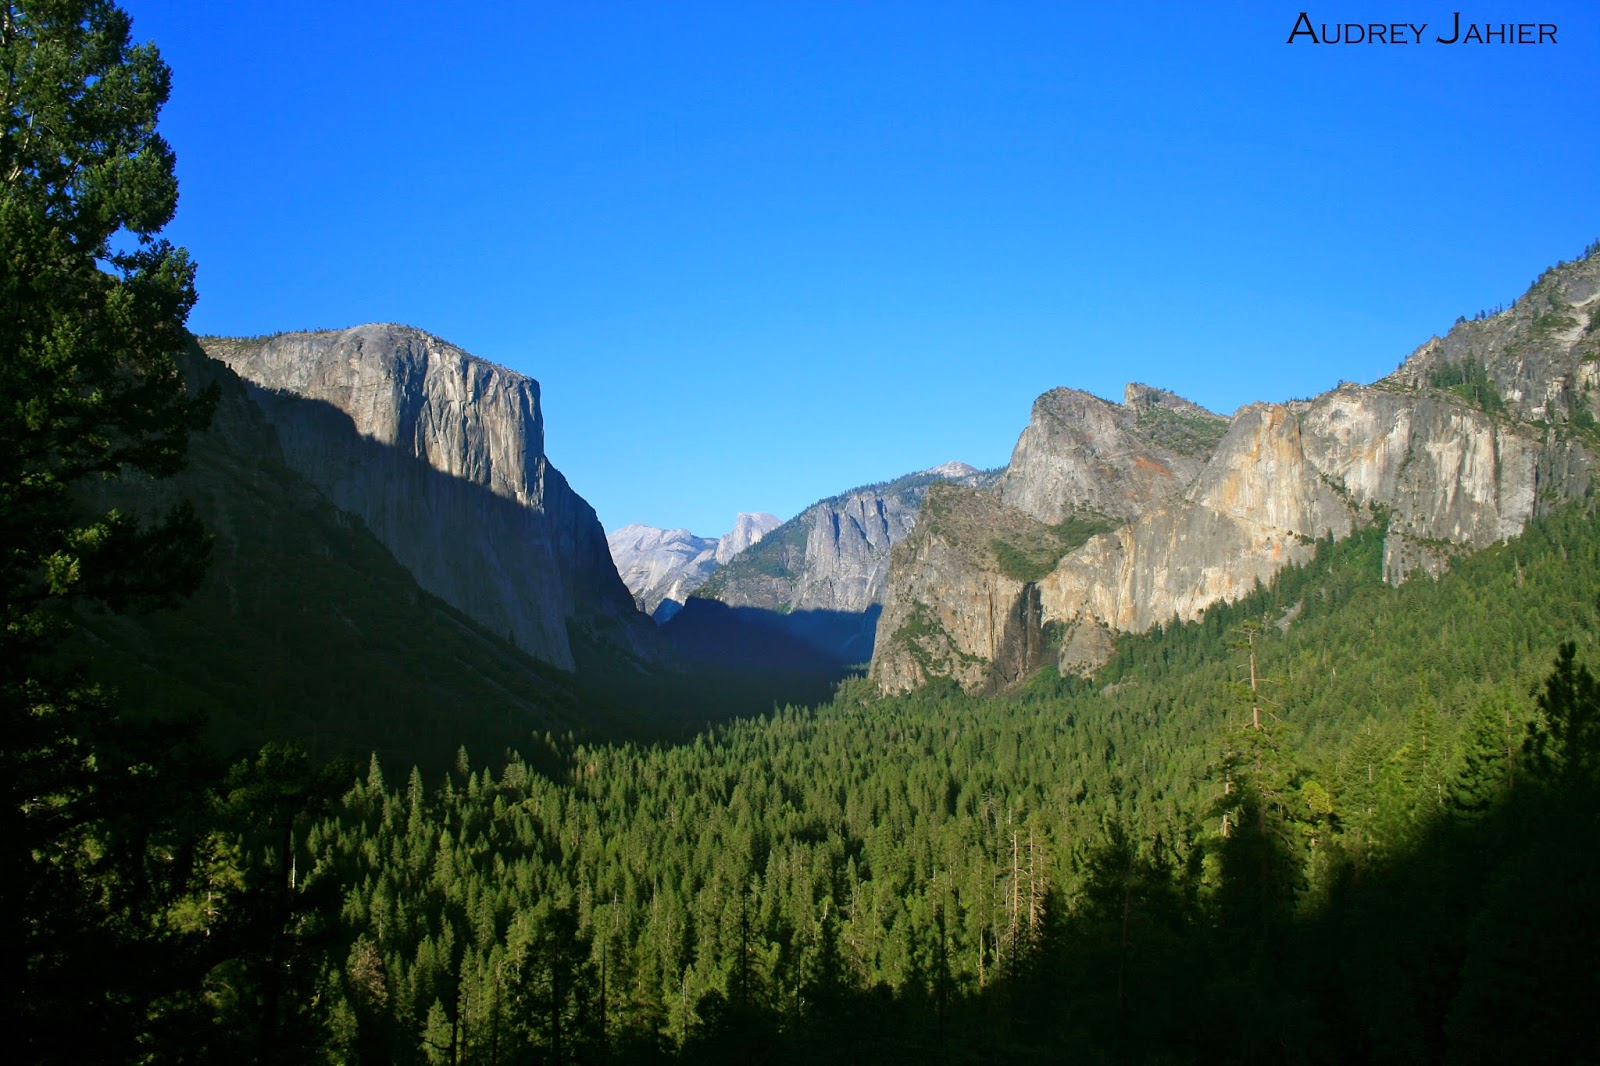 Yosemite-national-park-Roadtrip-USA